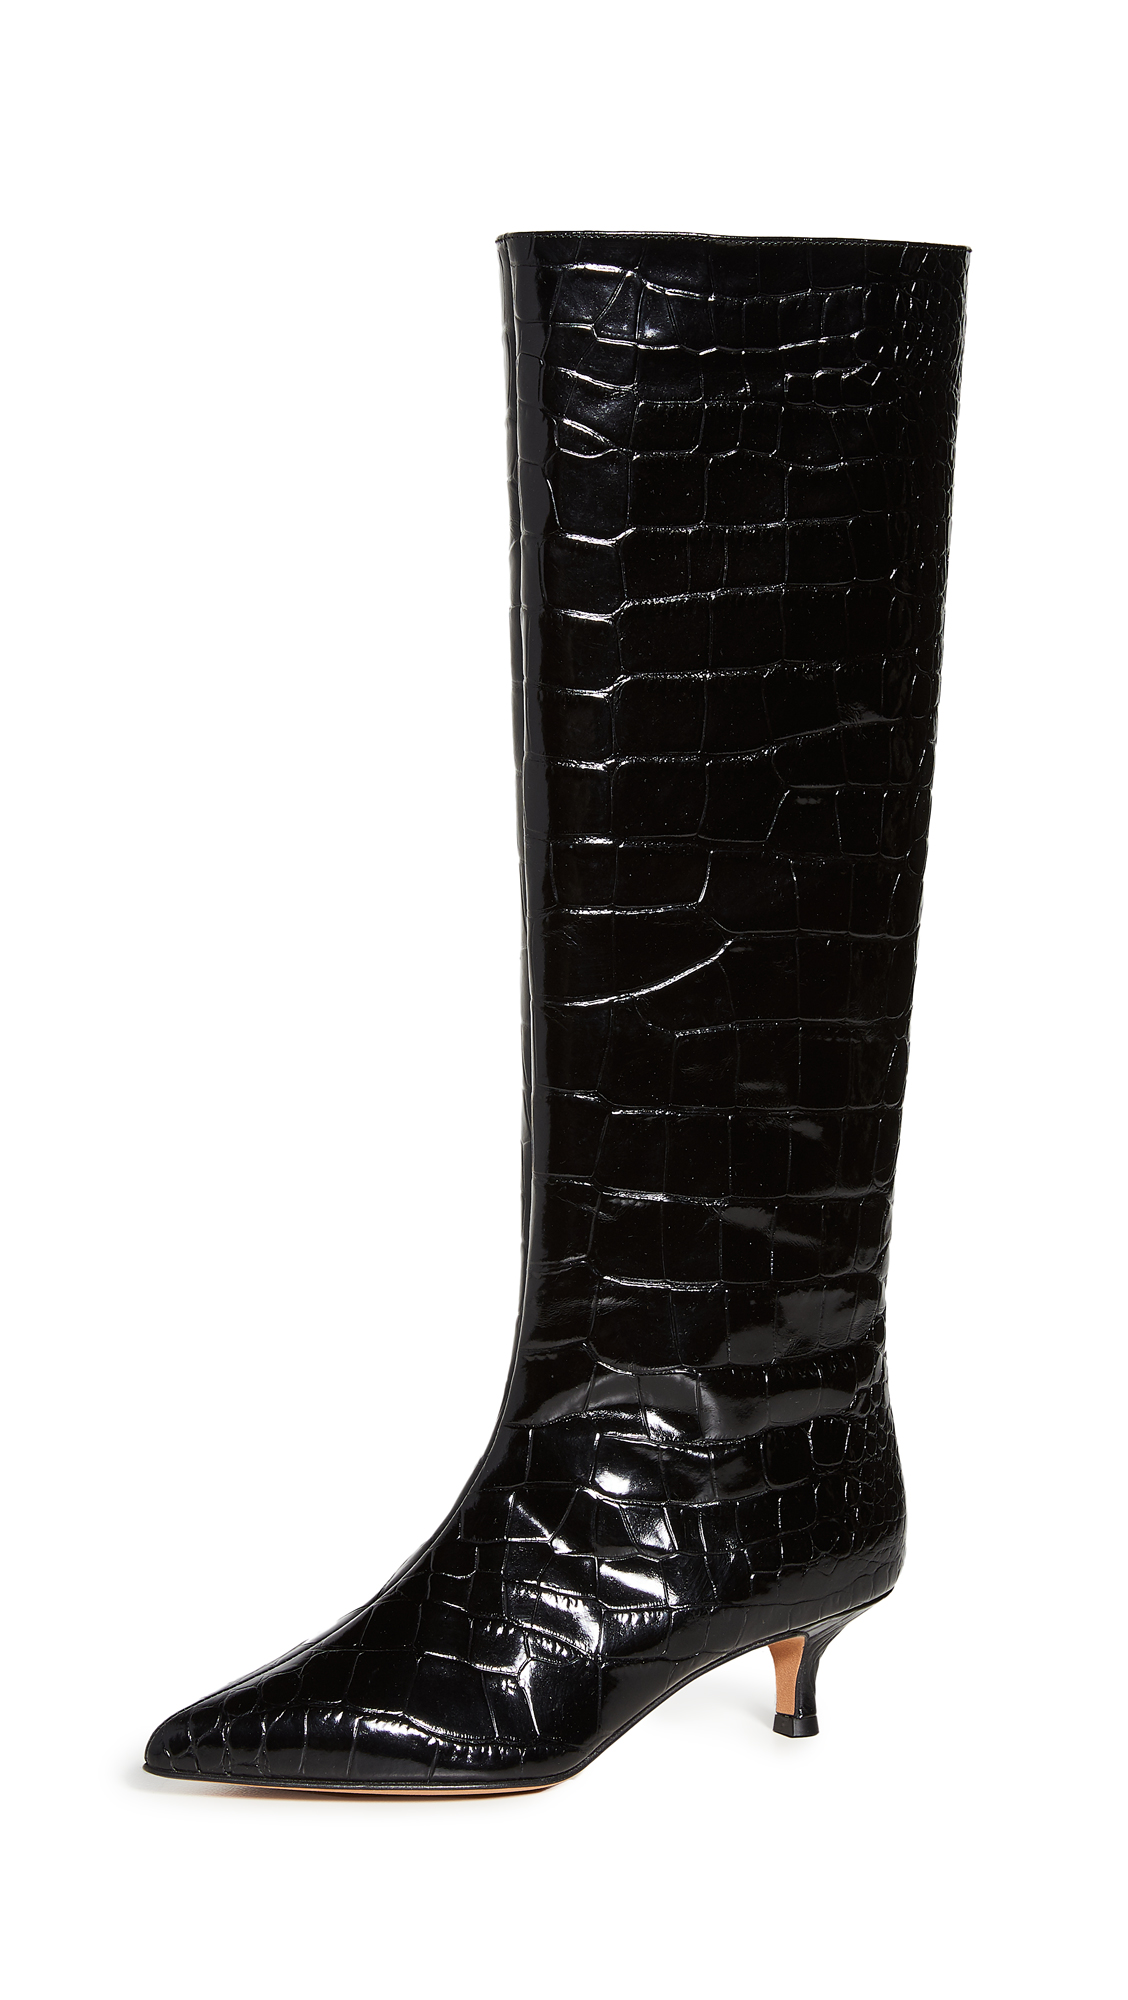 Tibi Collier Boots